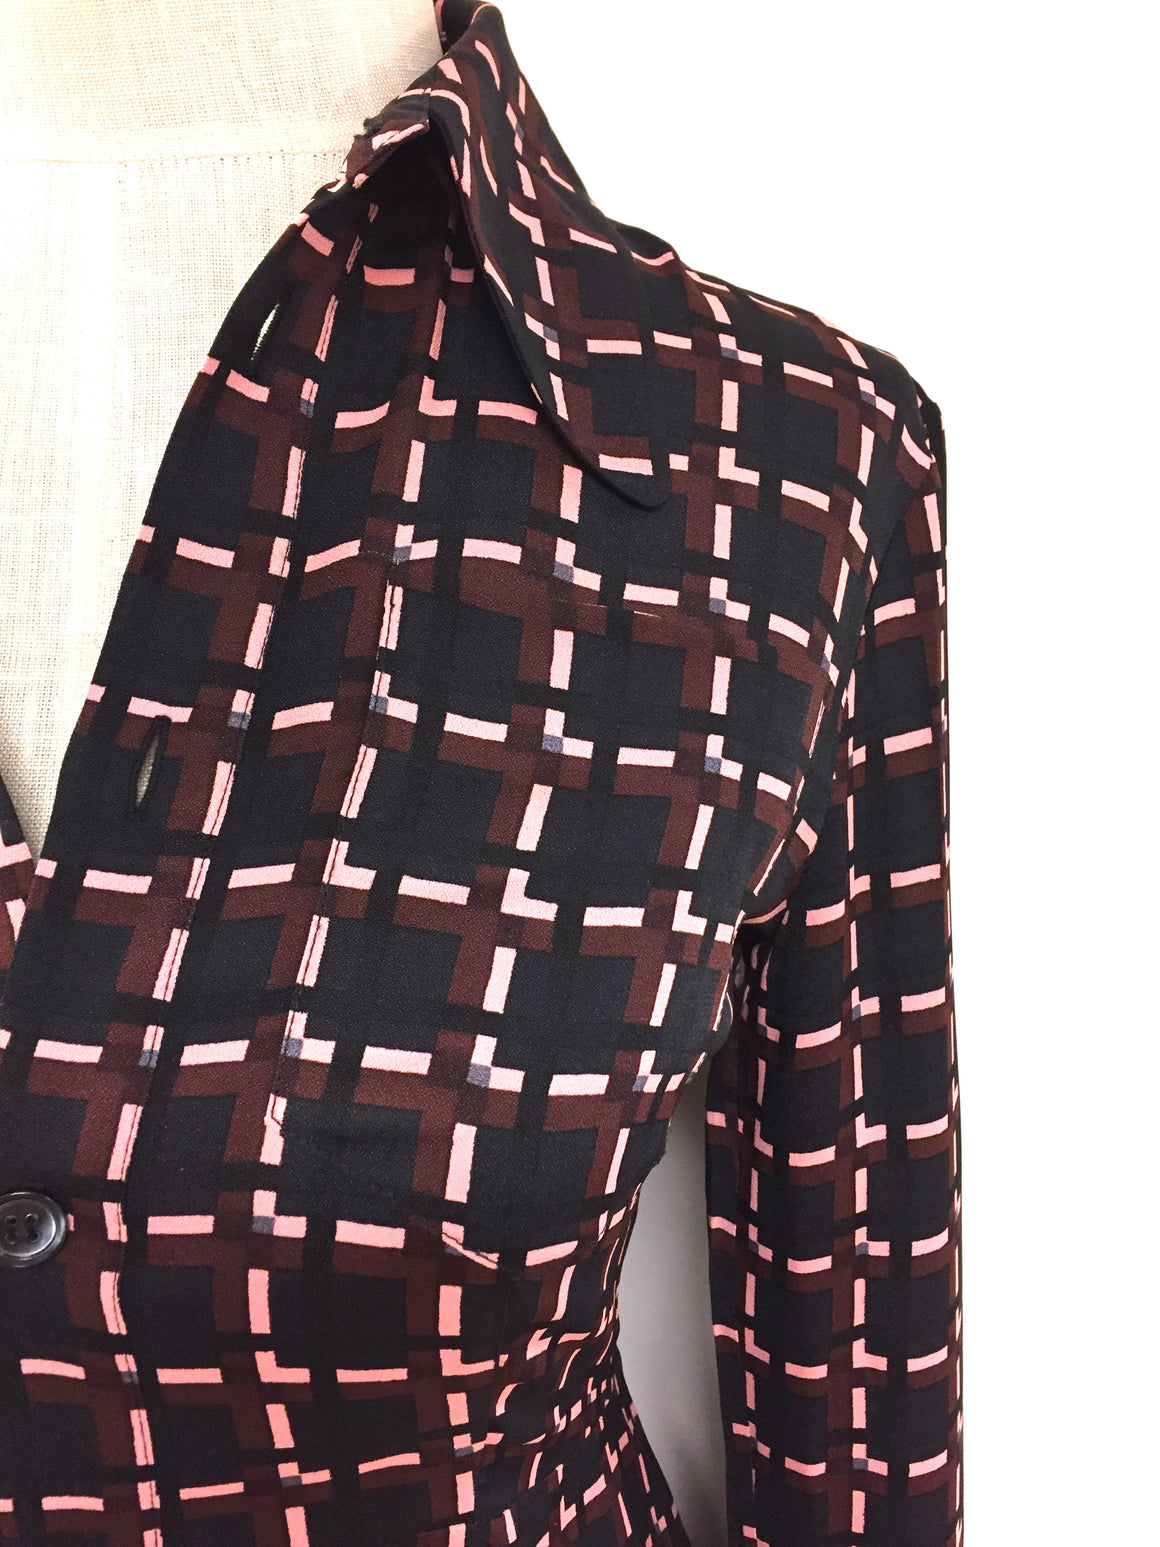 MARNI  Black Brown Pink Geometric-Print Viscose Flutter-Bottom Blouse Top Size: 4 (estimated)